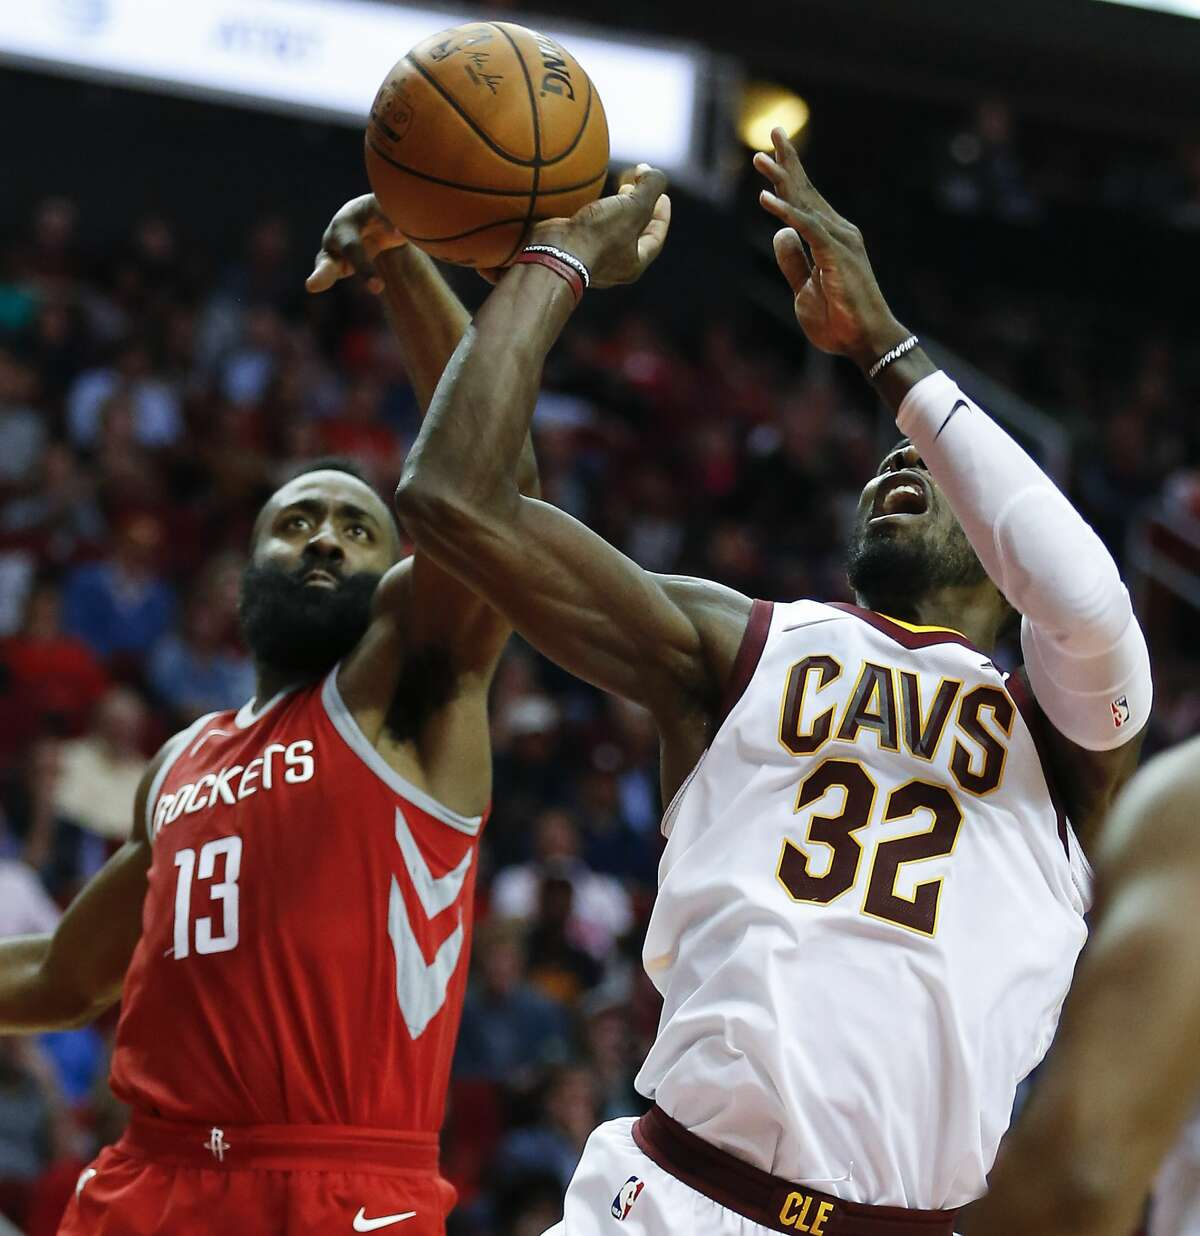 Houston Rockets guard James Harden (13) knocks the ball away from Cleveland Cavaliers forward LeBron James (23) as he takes a shot at the basket during the fourth quarter of an NBA basketball game at Toyota Center on Thursday, Nov. 9, 2017, in Houston. ( Brett Coomer / Houston Chronicle )